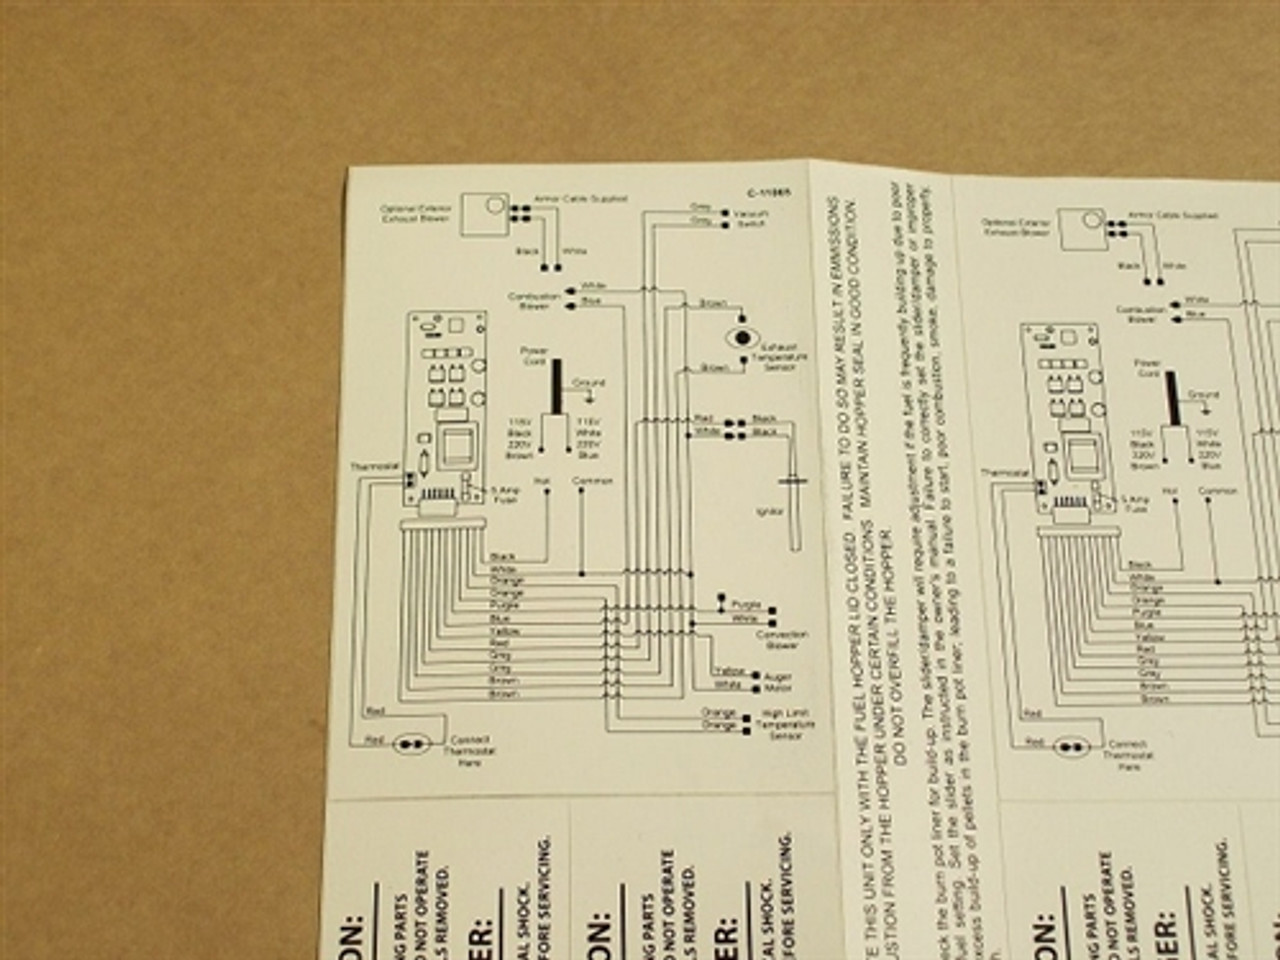 Replacement Enviro EF5 Self Adhesive Wiring Diagram - 50-335Stove Parts Unlimited